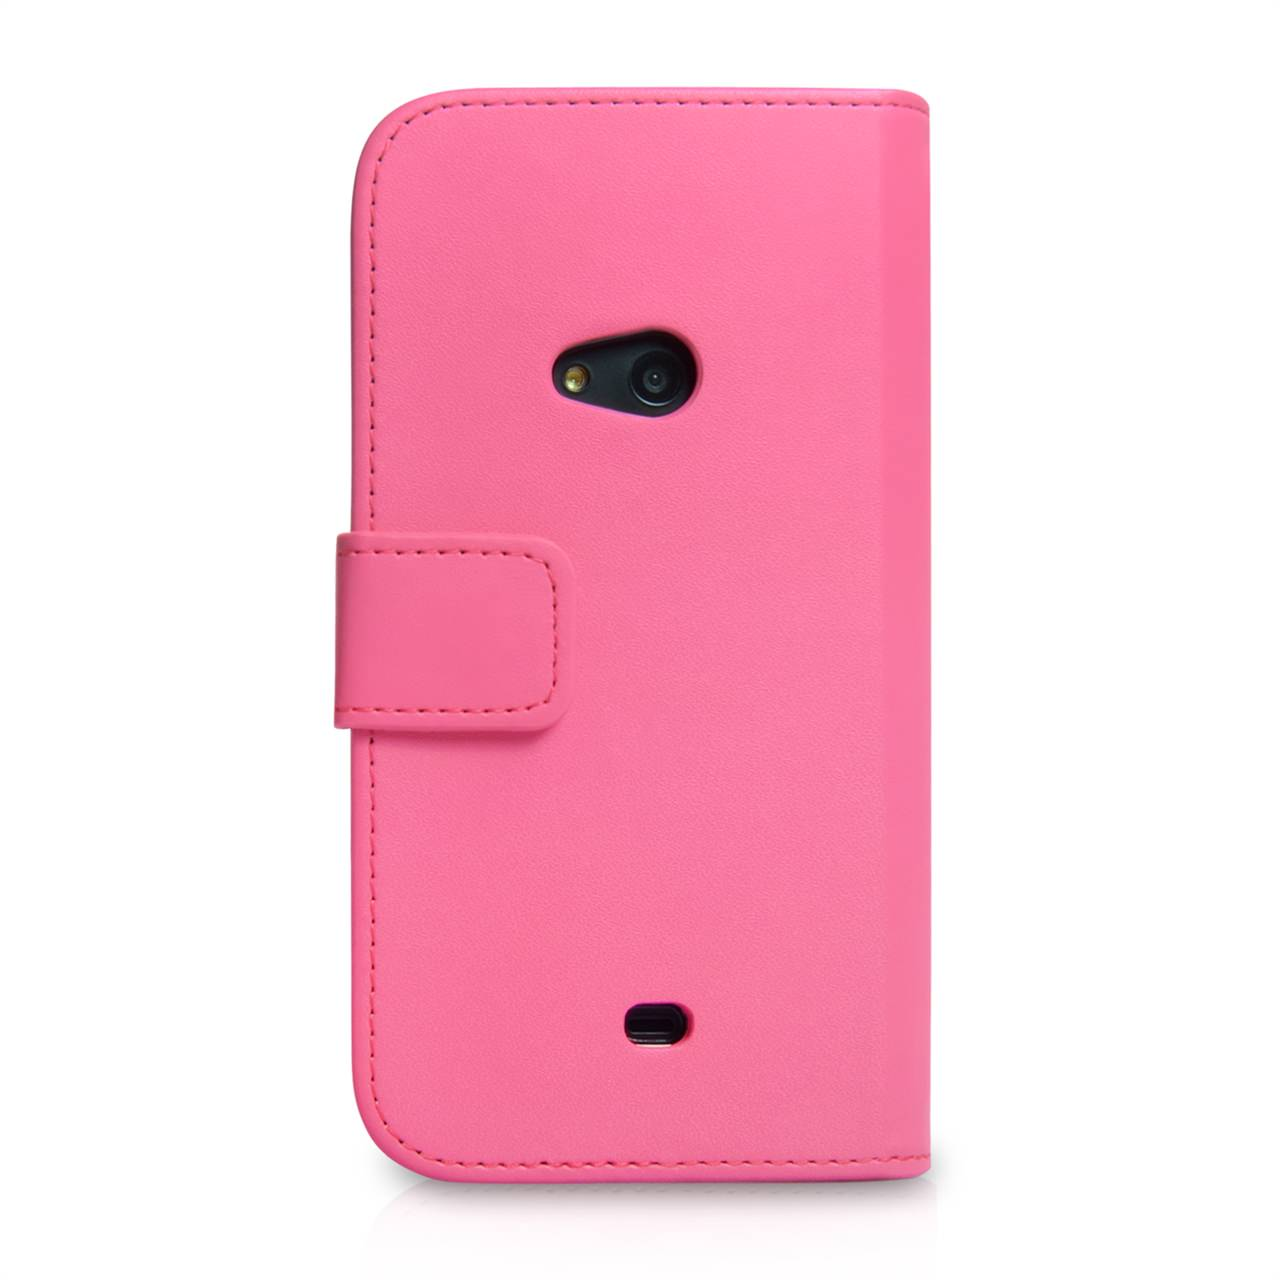 YouSave Nokia Lumia 625 Leather Effect Wallet Case - Hot Pink